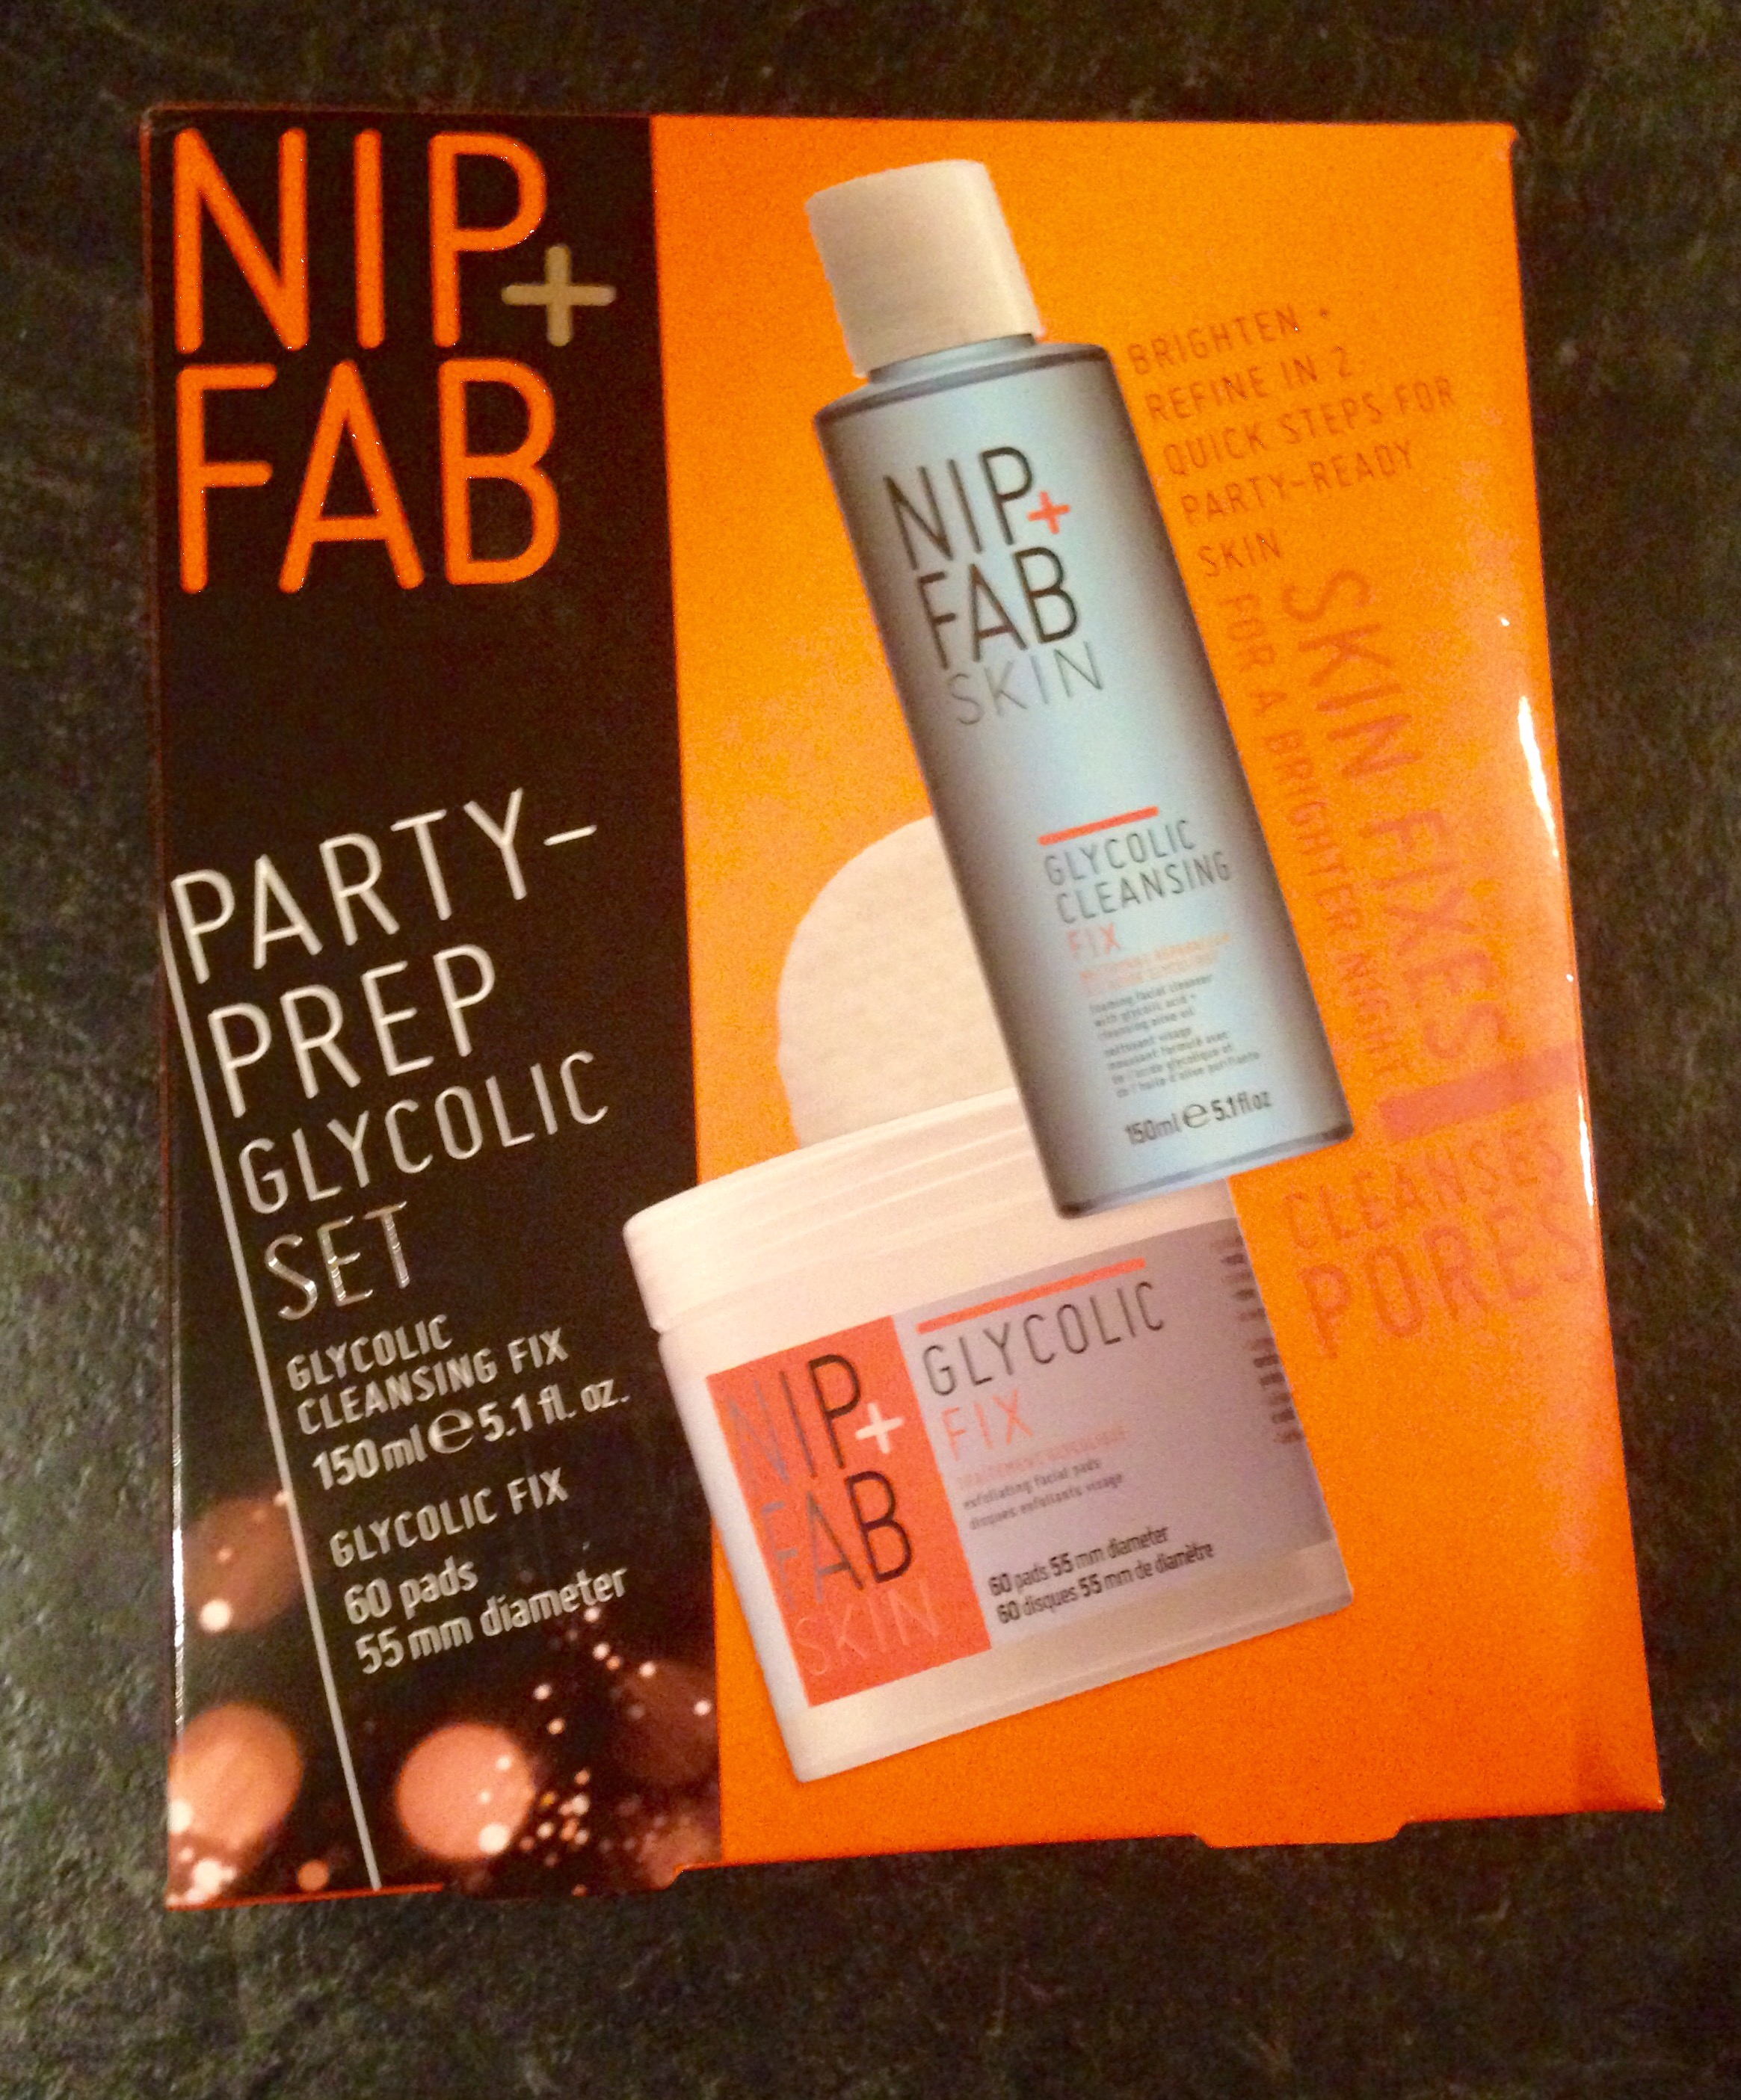 Nip + Fab Party-prep Glycolic Set Newhite Instant Brightening Mask For The Face 7x40ml/1.4oz